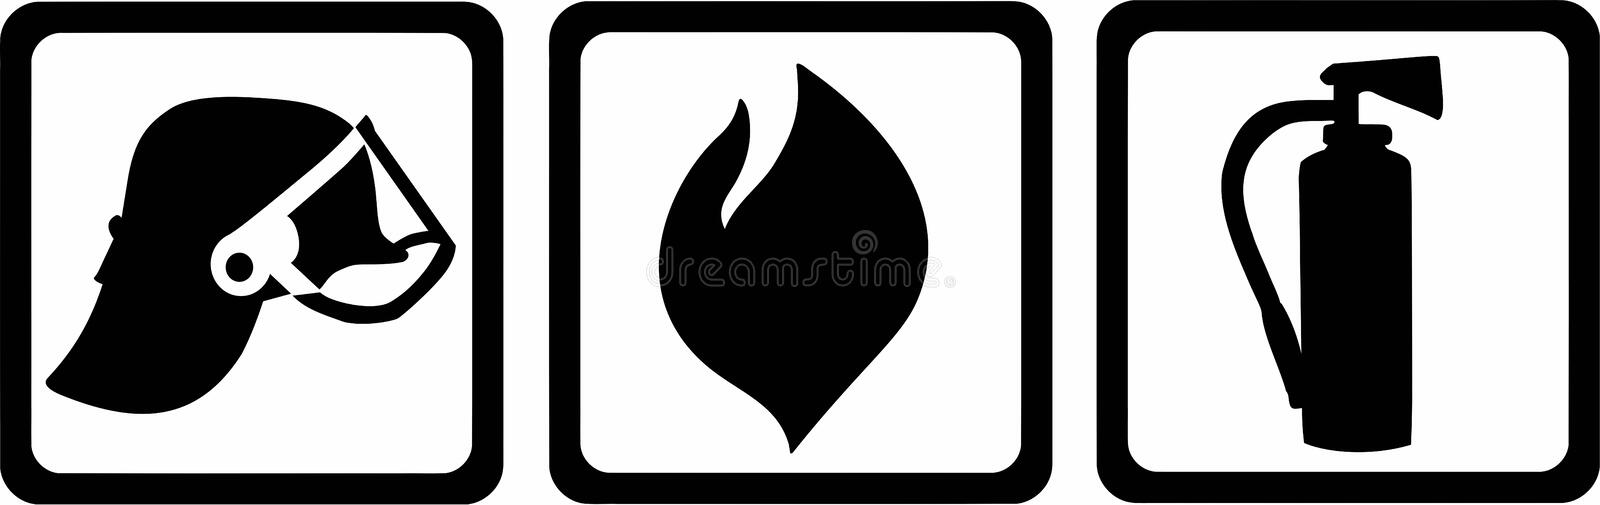 Vector de Pictogram del bombero libre illustration